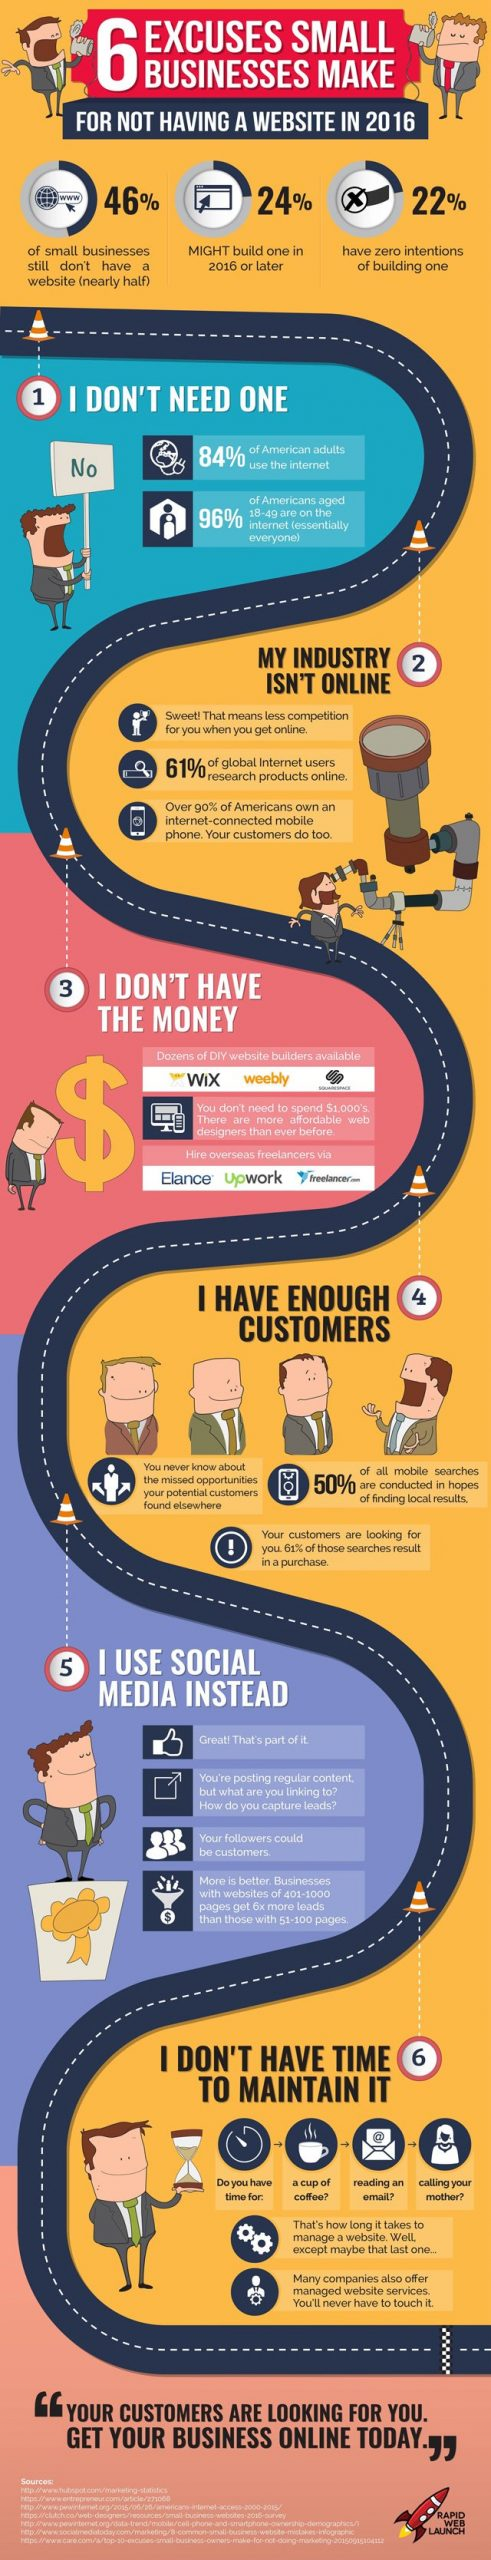 0595 01 excuses for not having a website infographic scaled